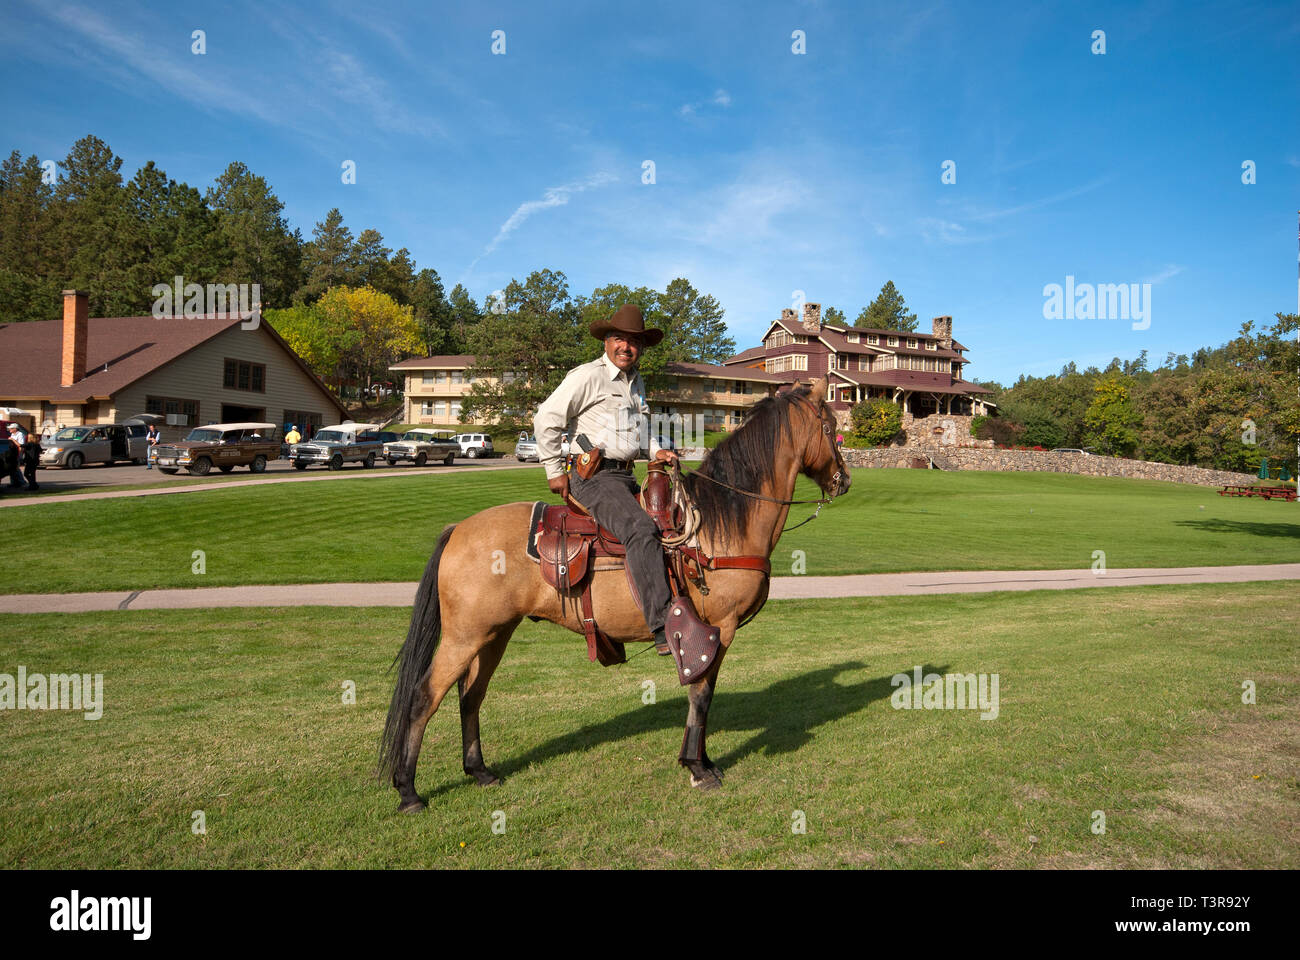 Park ranger on his horse near the State Game Lodge (in the background), Custer State Park, Black Hills, South Dakota, USA - Stock Image